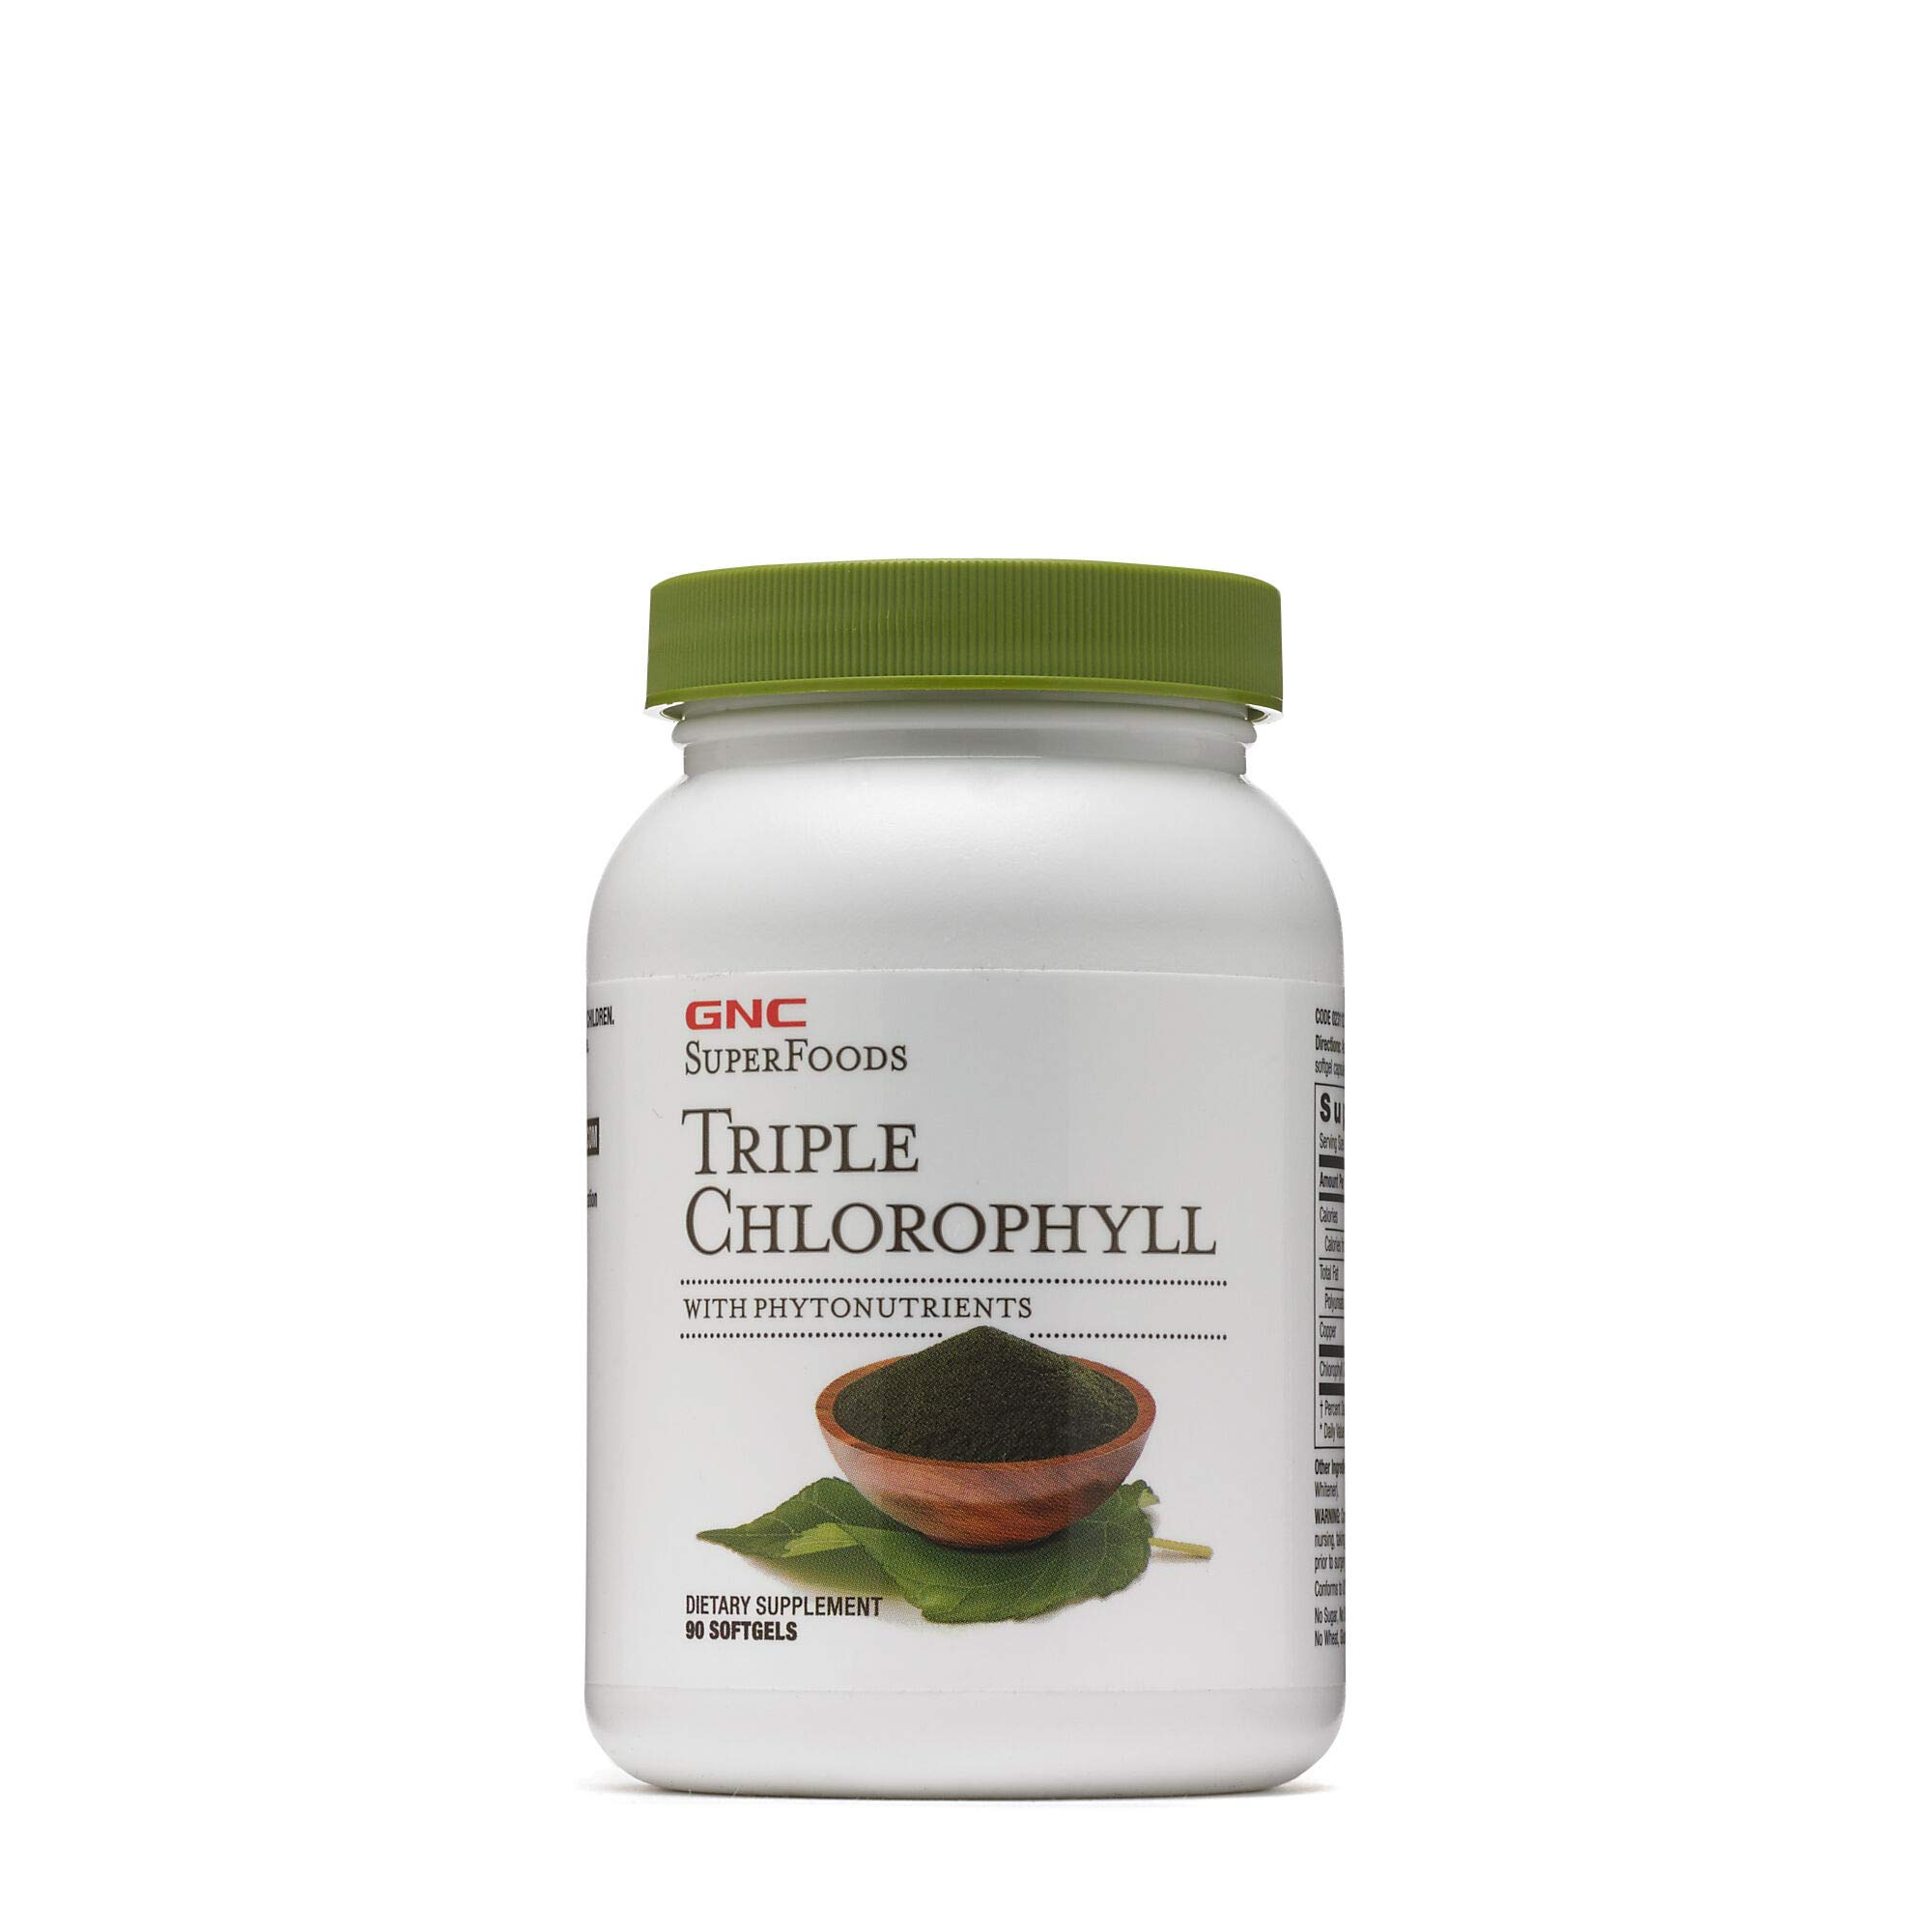 GNC Superfoods Triple Chlorophyll, 90 Softgels, Supports with Weight Loss